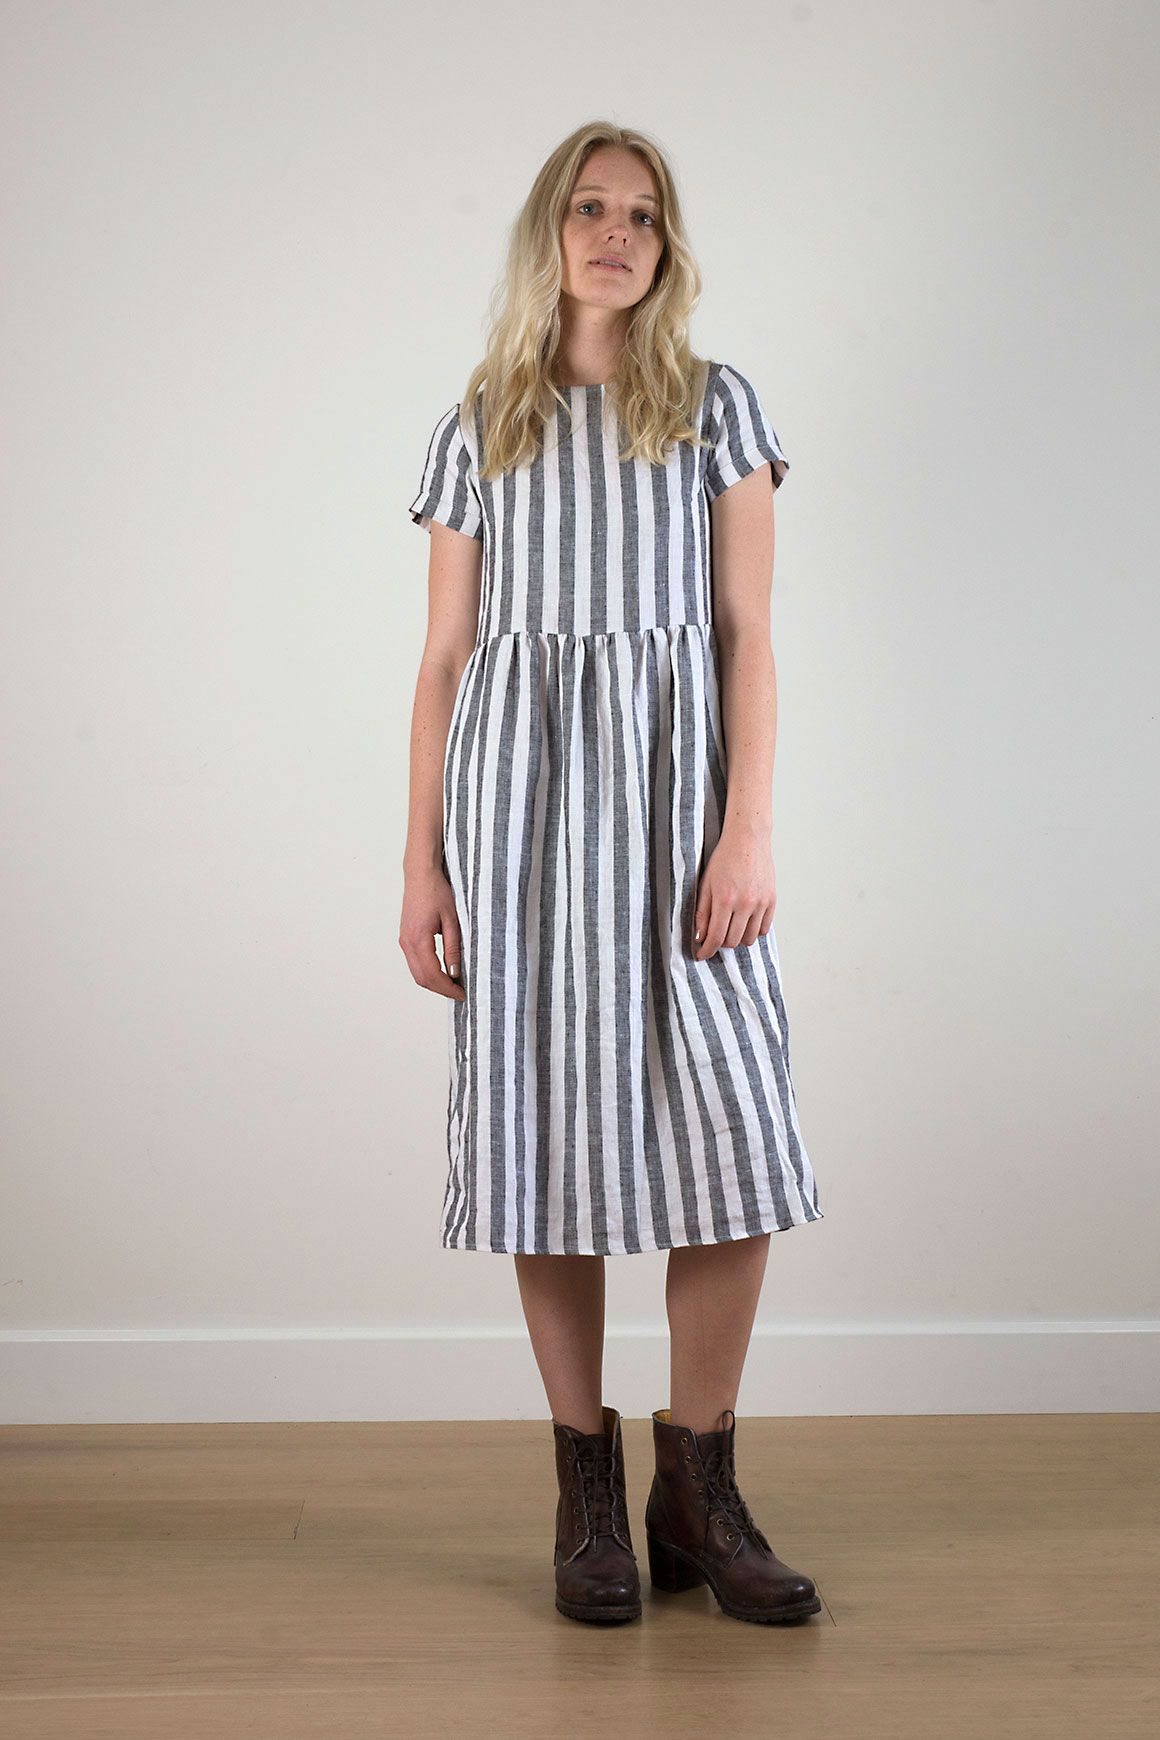 991fbe2cb479 Blue striped linen day dress. This dress is medium weight 100% linen ...